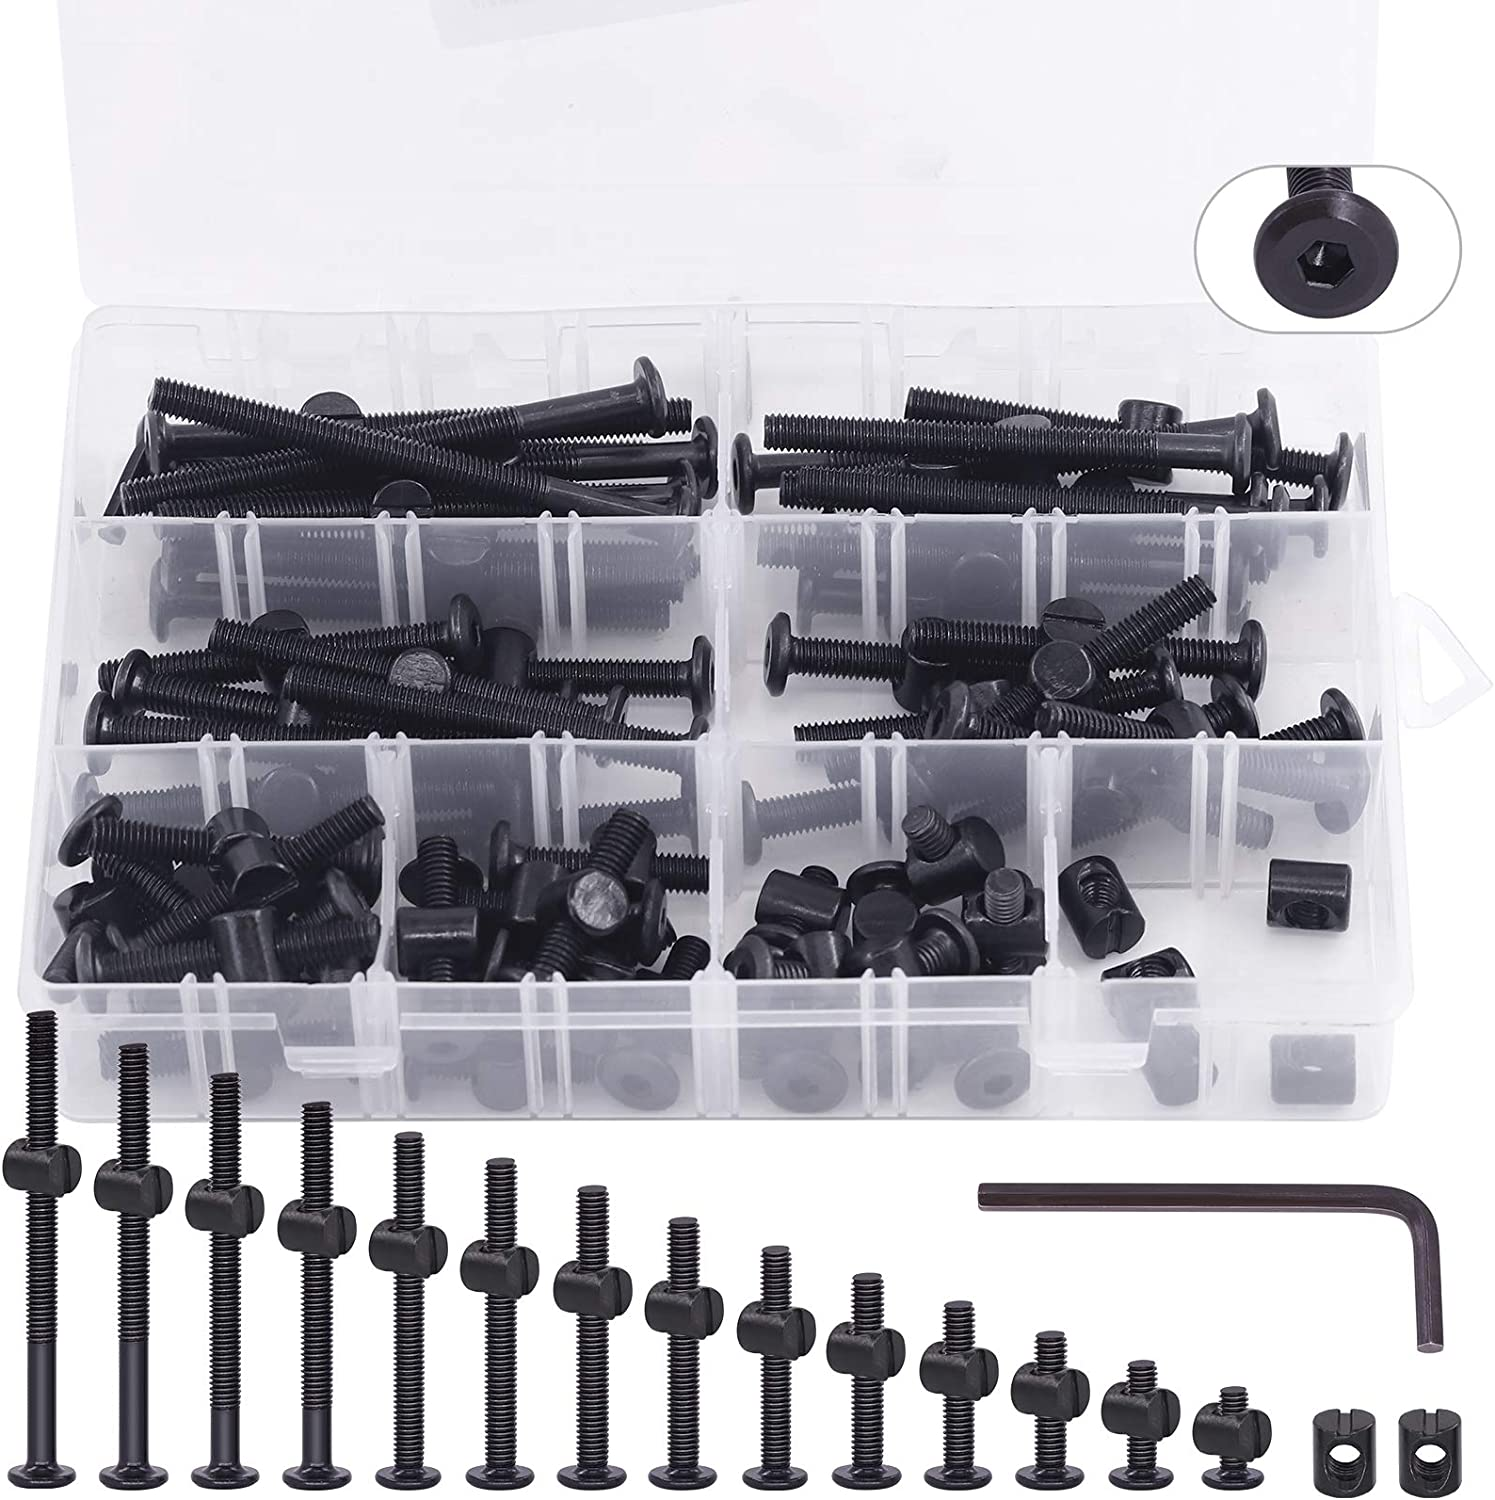 Keadic 141Pcs M6 x 15-80 mm Baby Bed Screws Hardware Replacement Kit, Black Hex Socket Cap Bolts Barrel Nuts Assortment Kit for Furniture Cots Beds Crib, 1 Hex Key and Plastic Box for Free